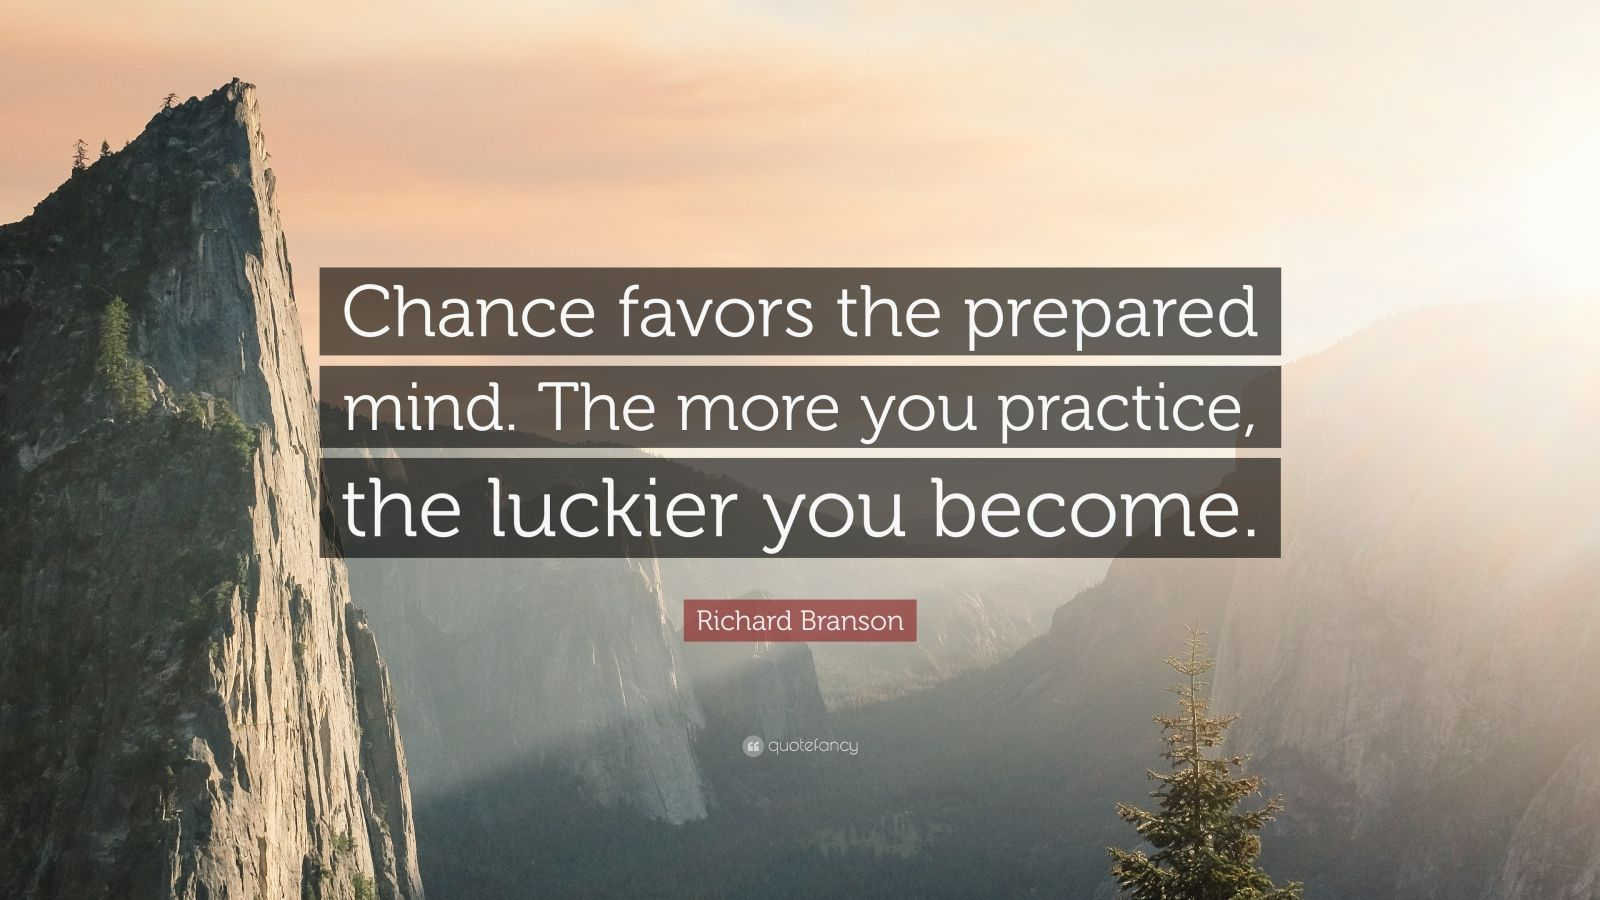 """Richard Branson Quote: """"Chance favors the prepared mind. The more you practice, the luckier you become."""""""